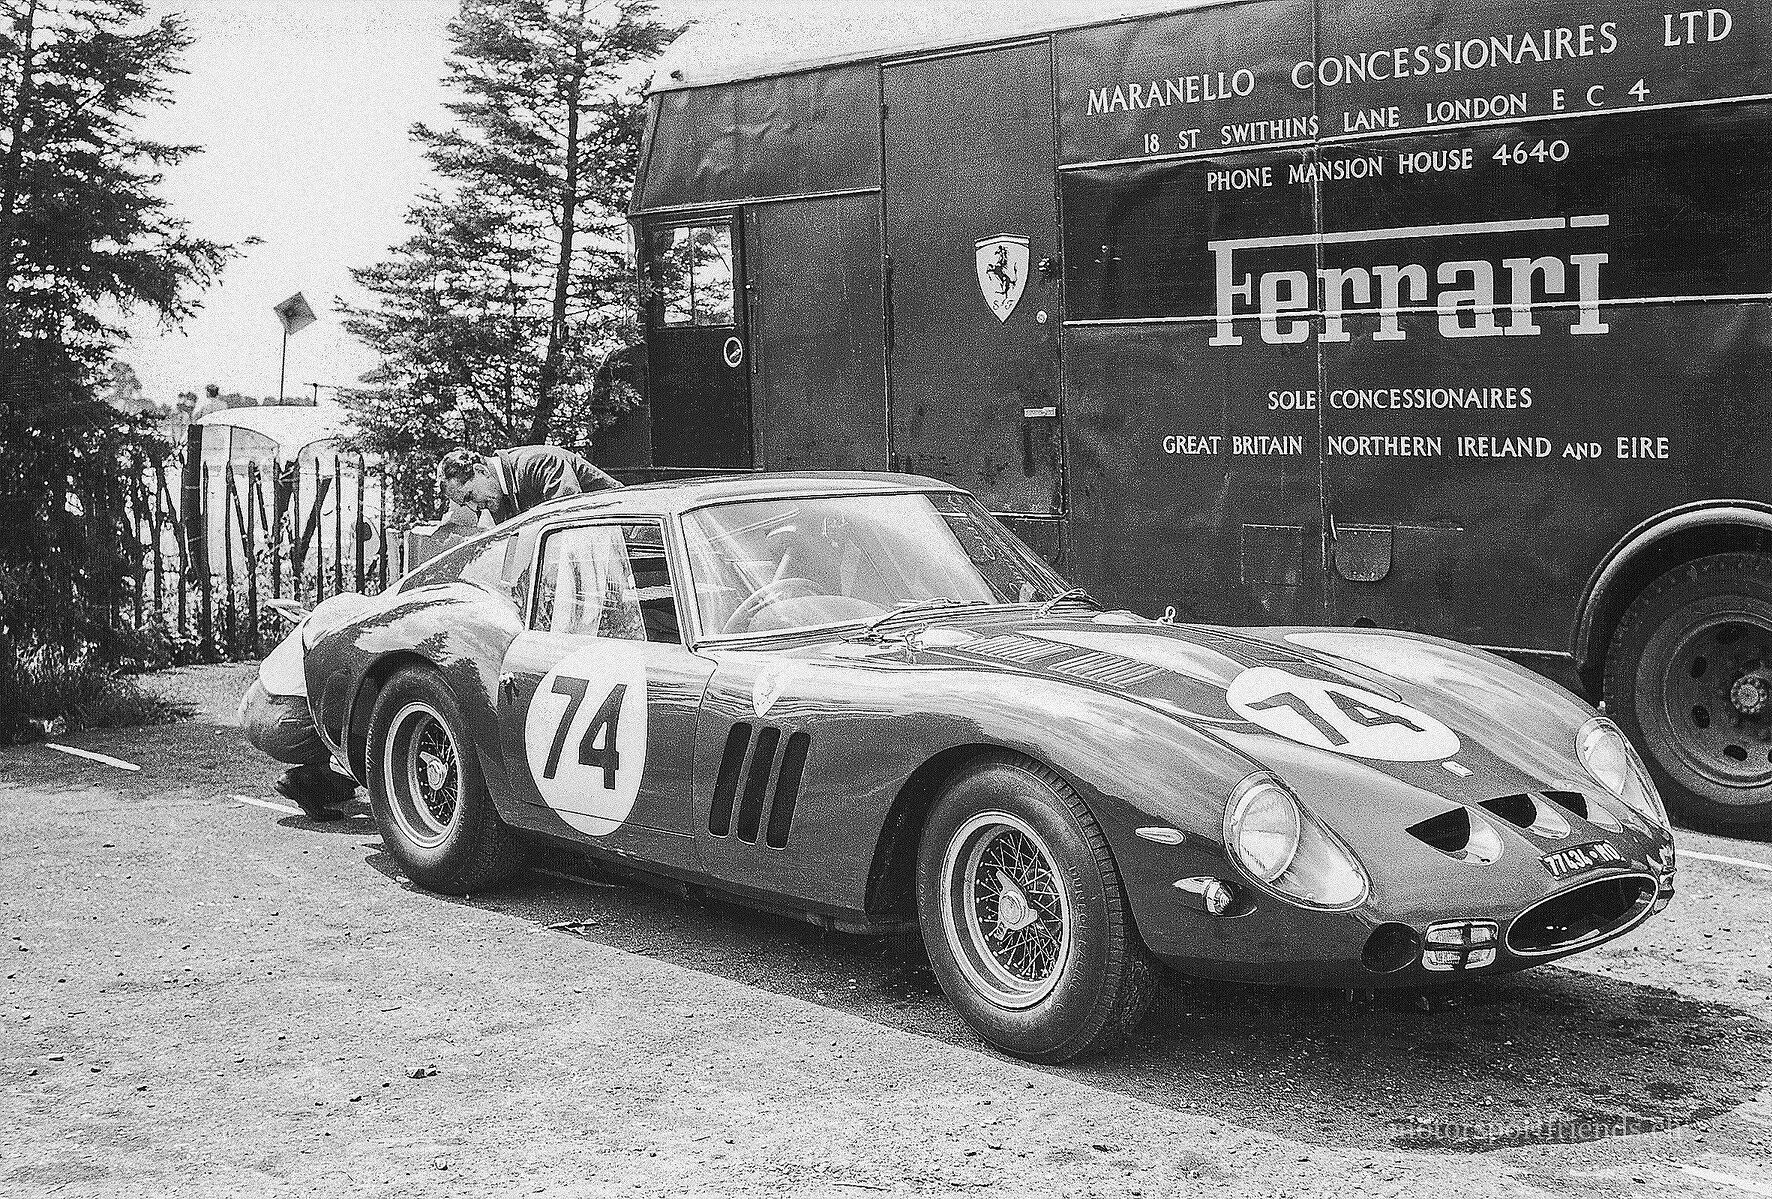 Transporteur - GV vert - Maranello Concessionaires - 1962 - Brands Hatch International Guards Trophy